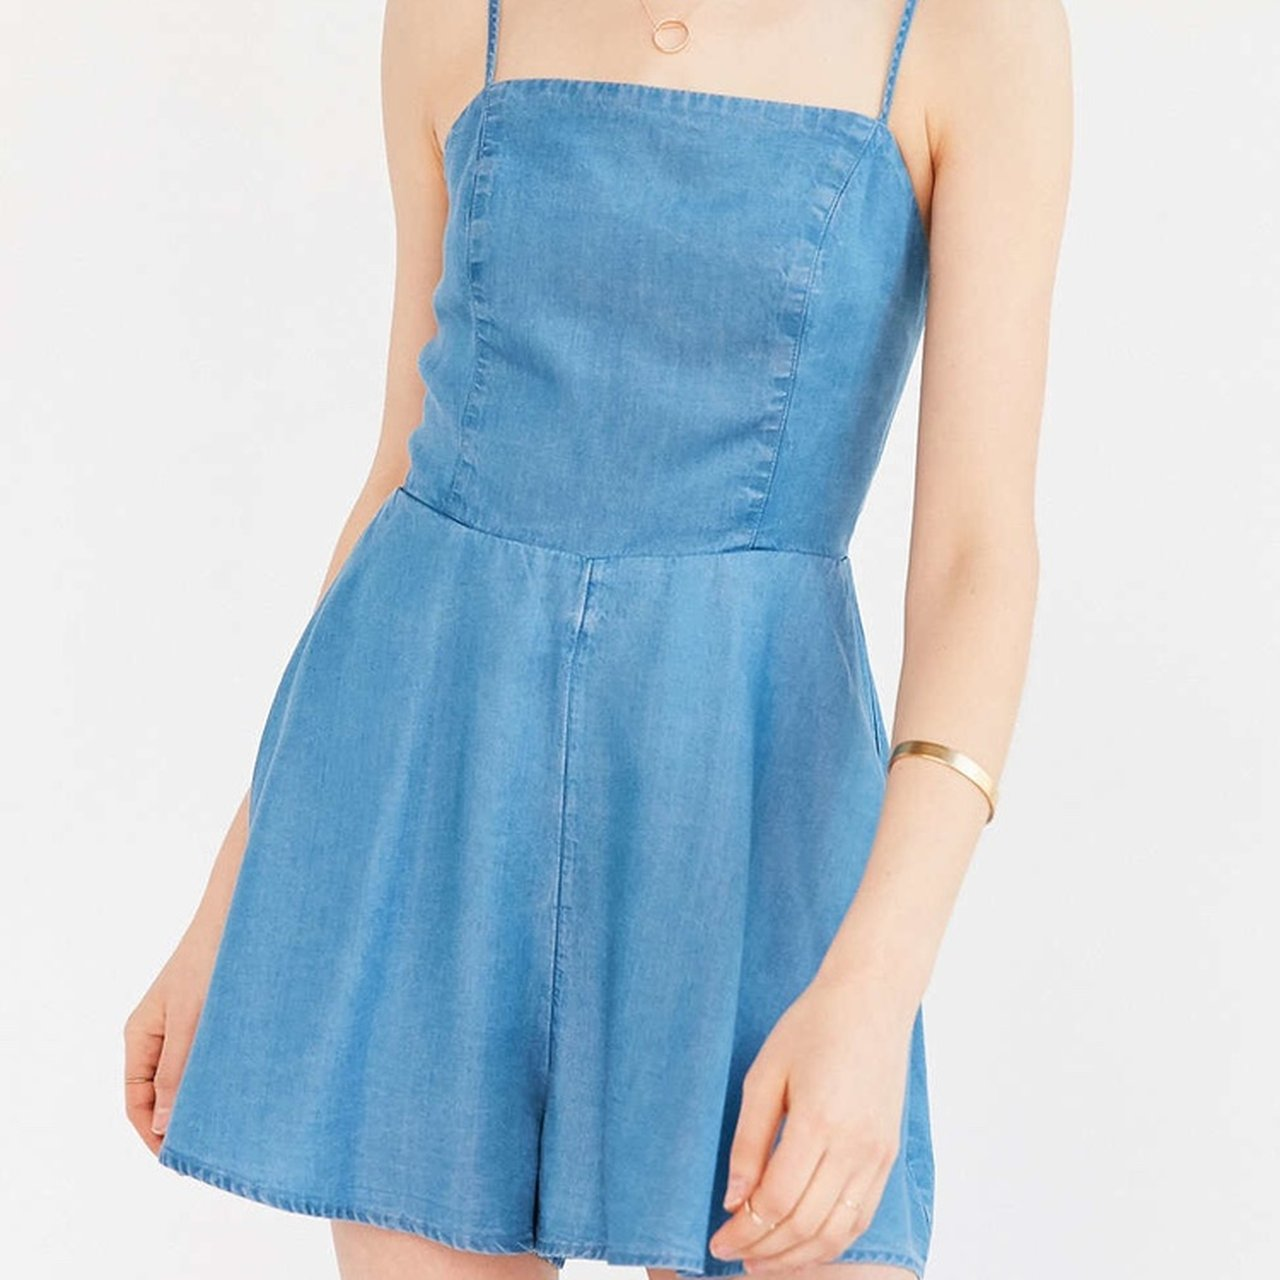 822aa922928 Denim colored flowy romper from Urban Outfitters. Zipper the - Depop